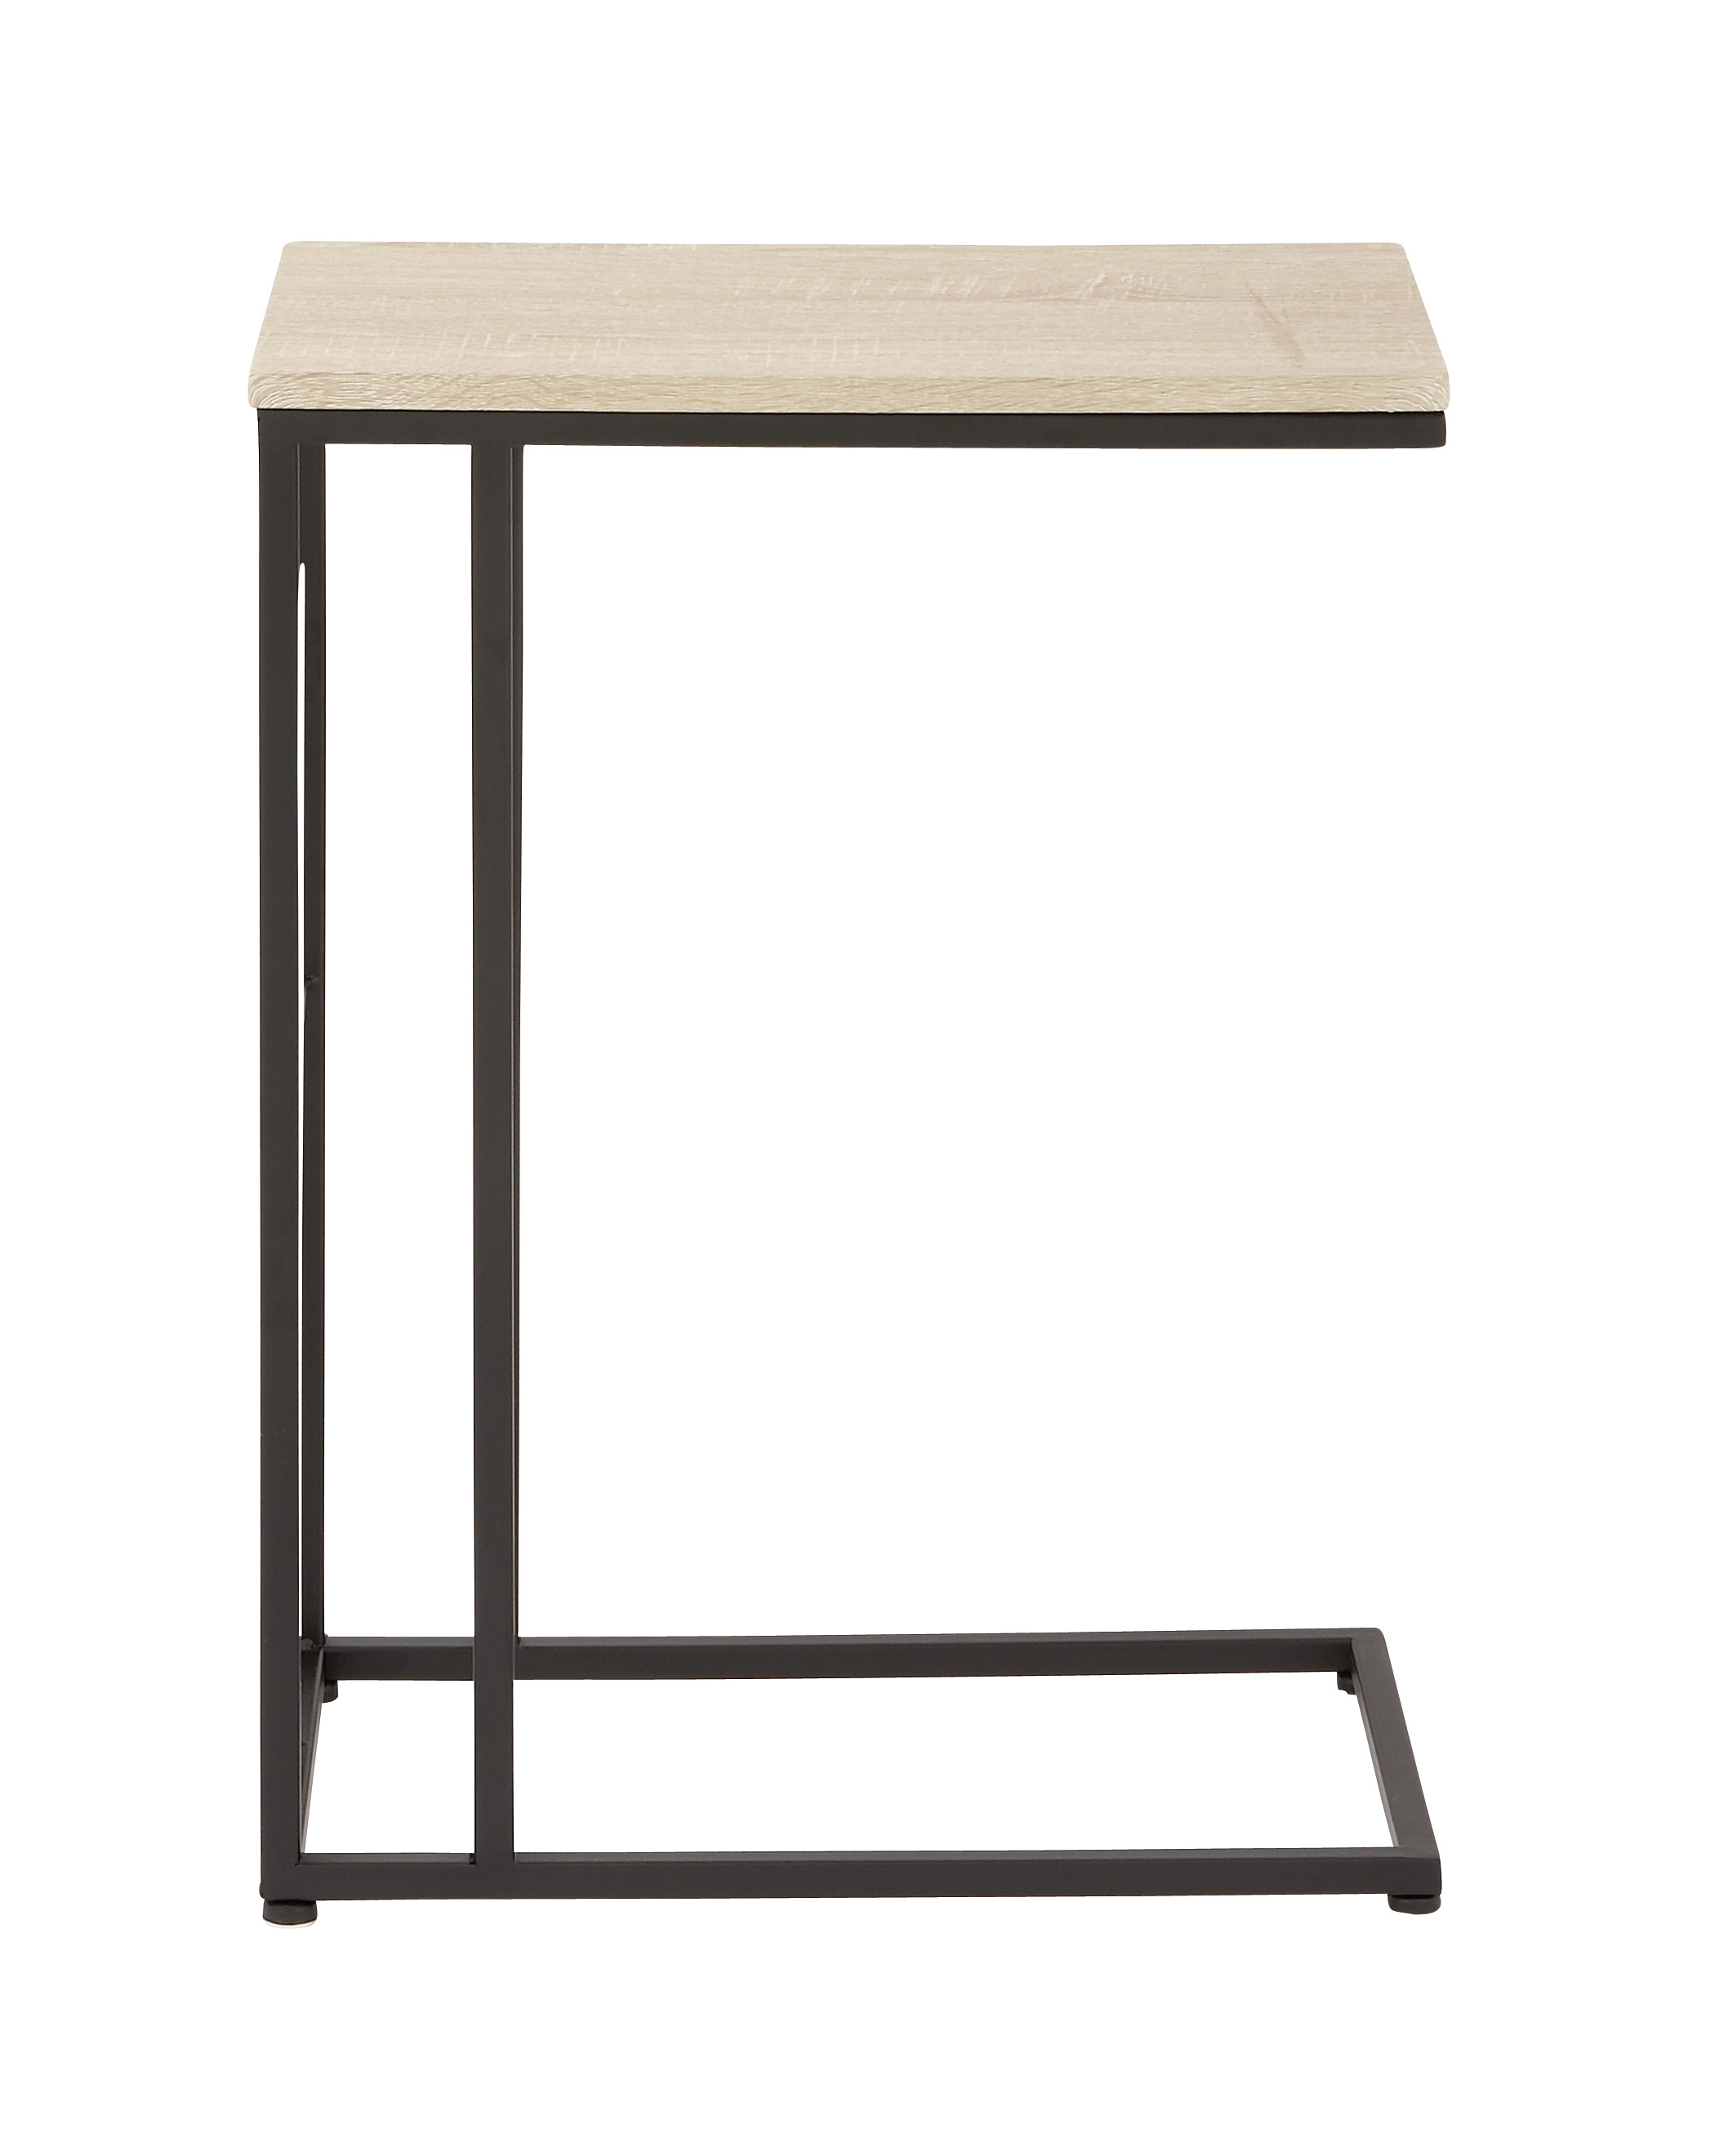 Decmode Contemporary Wood and Iron C-Shaped Accent Table, Cream by DecMode